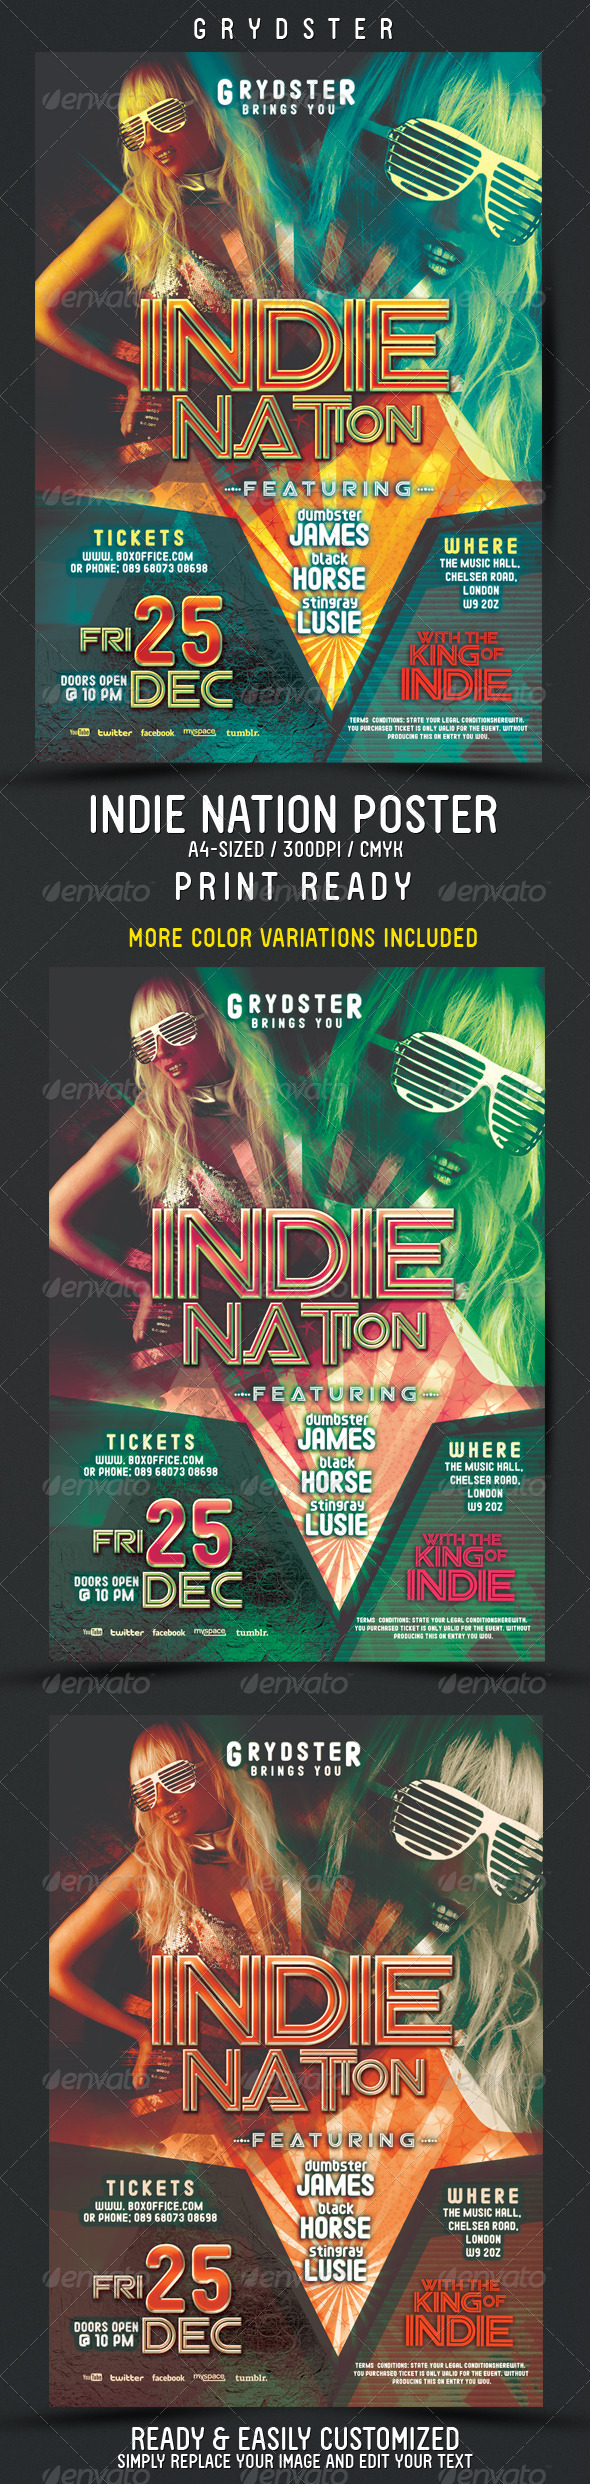 Indie Nation Flyer - Poster - Clubs & Parties Events